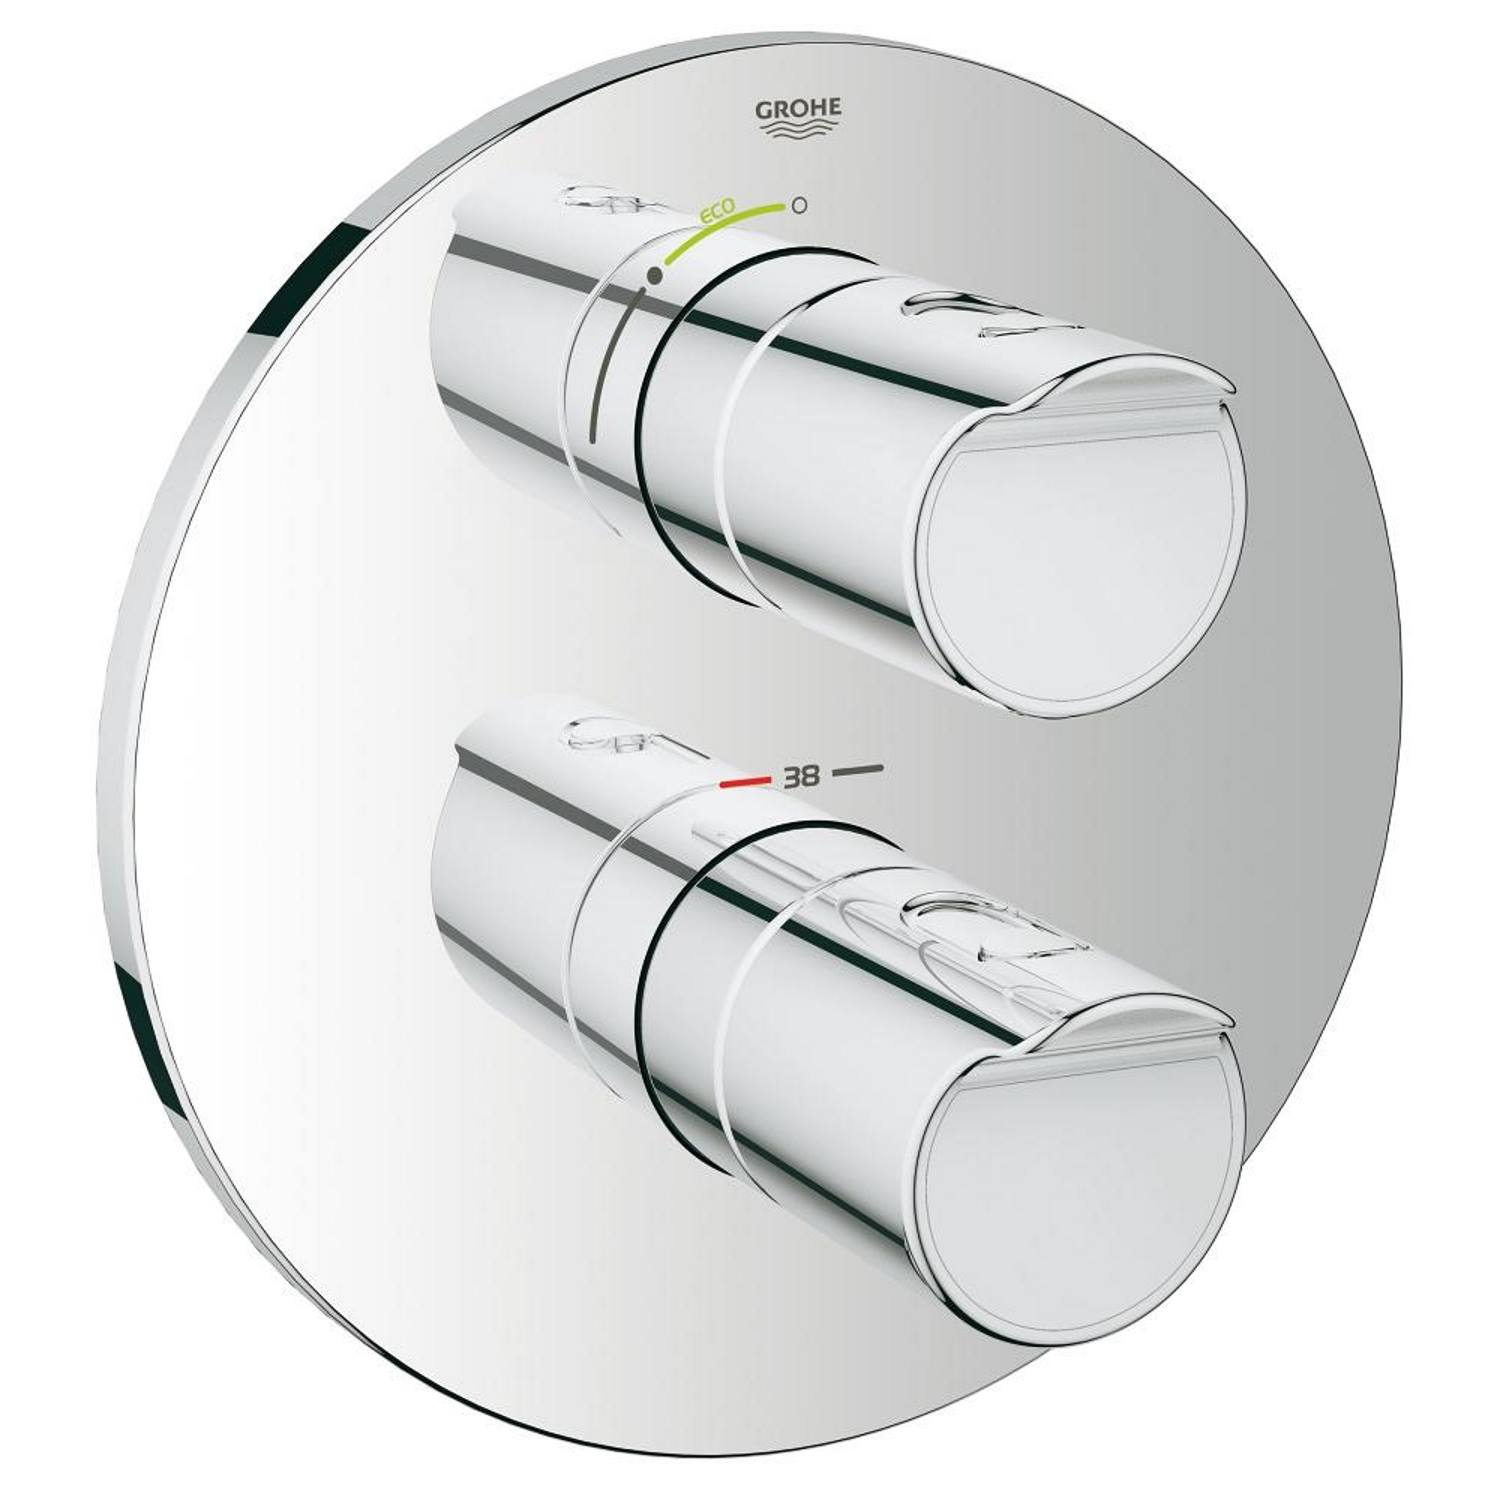 Grohe New Grohtherm 2000 afbouwdeel douchethermostaat chroom 19354001